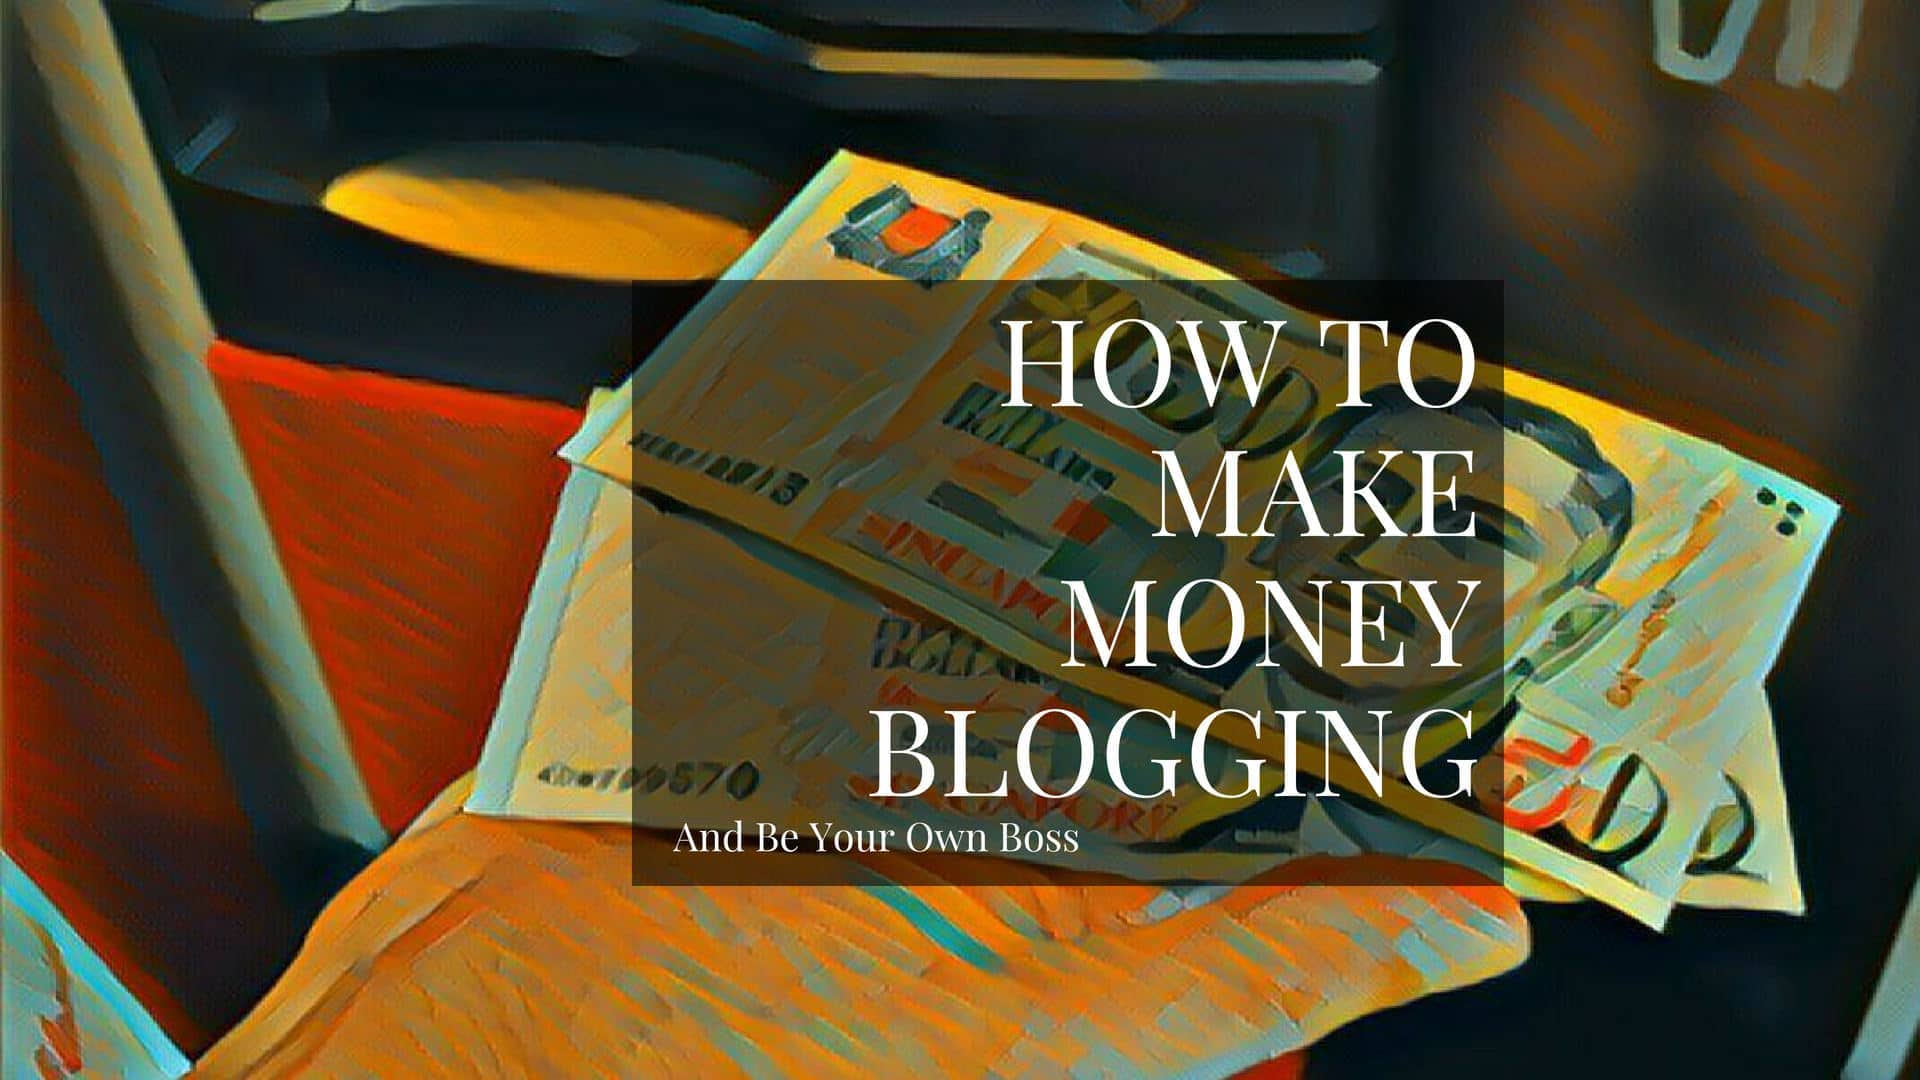 How To Make Money Blogging And Be Your Own Boss